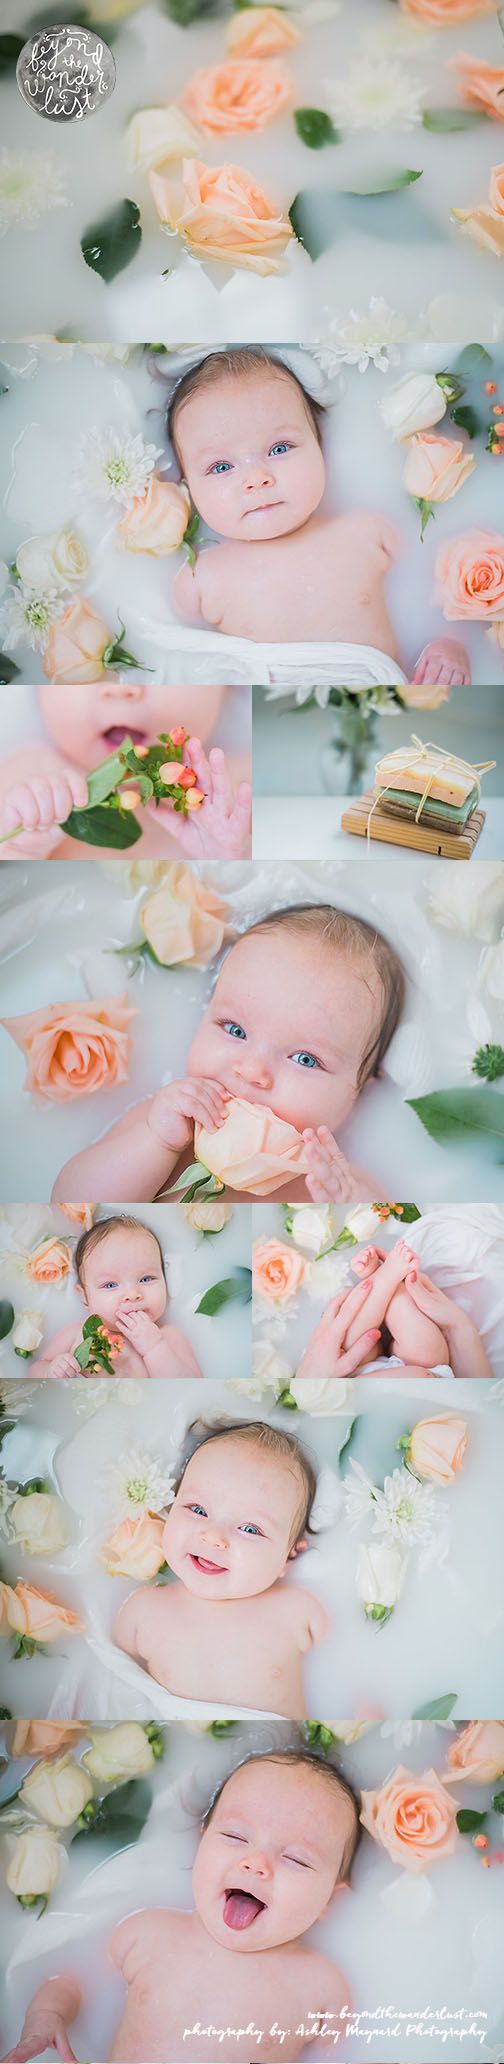 Looking to create a milk bath for a baby? Explore this session to get the perfect milk bath picture ideas.